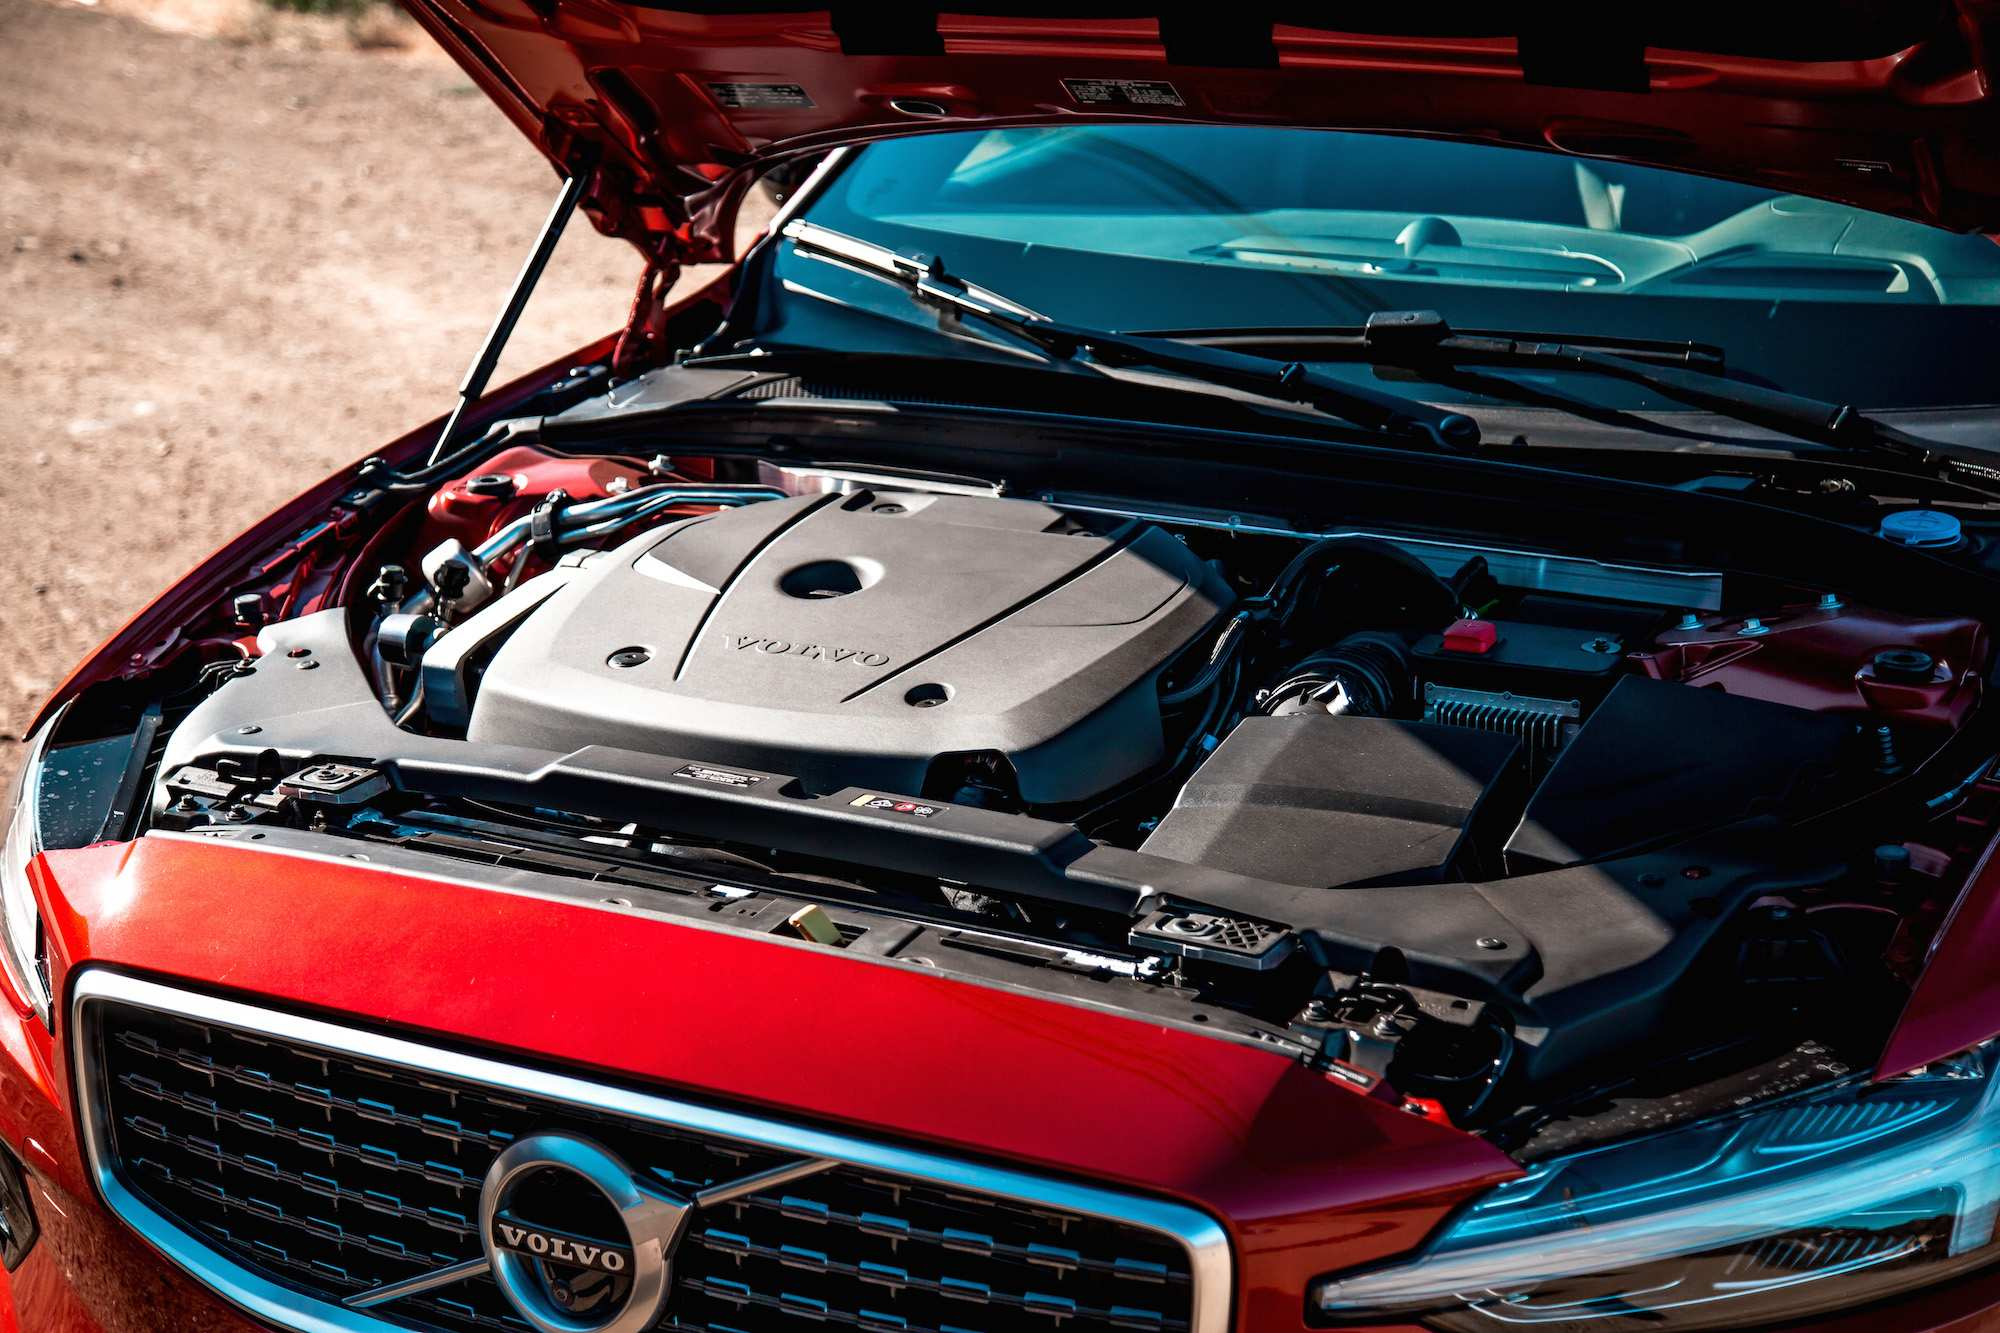 63 Best Review Volvo Engines 2020 Pricing with Volvo Engines 2020